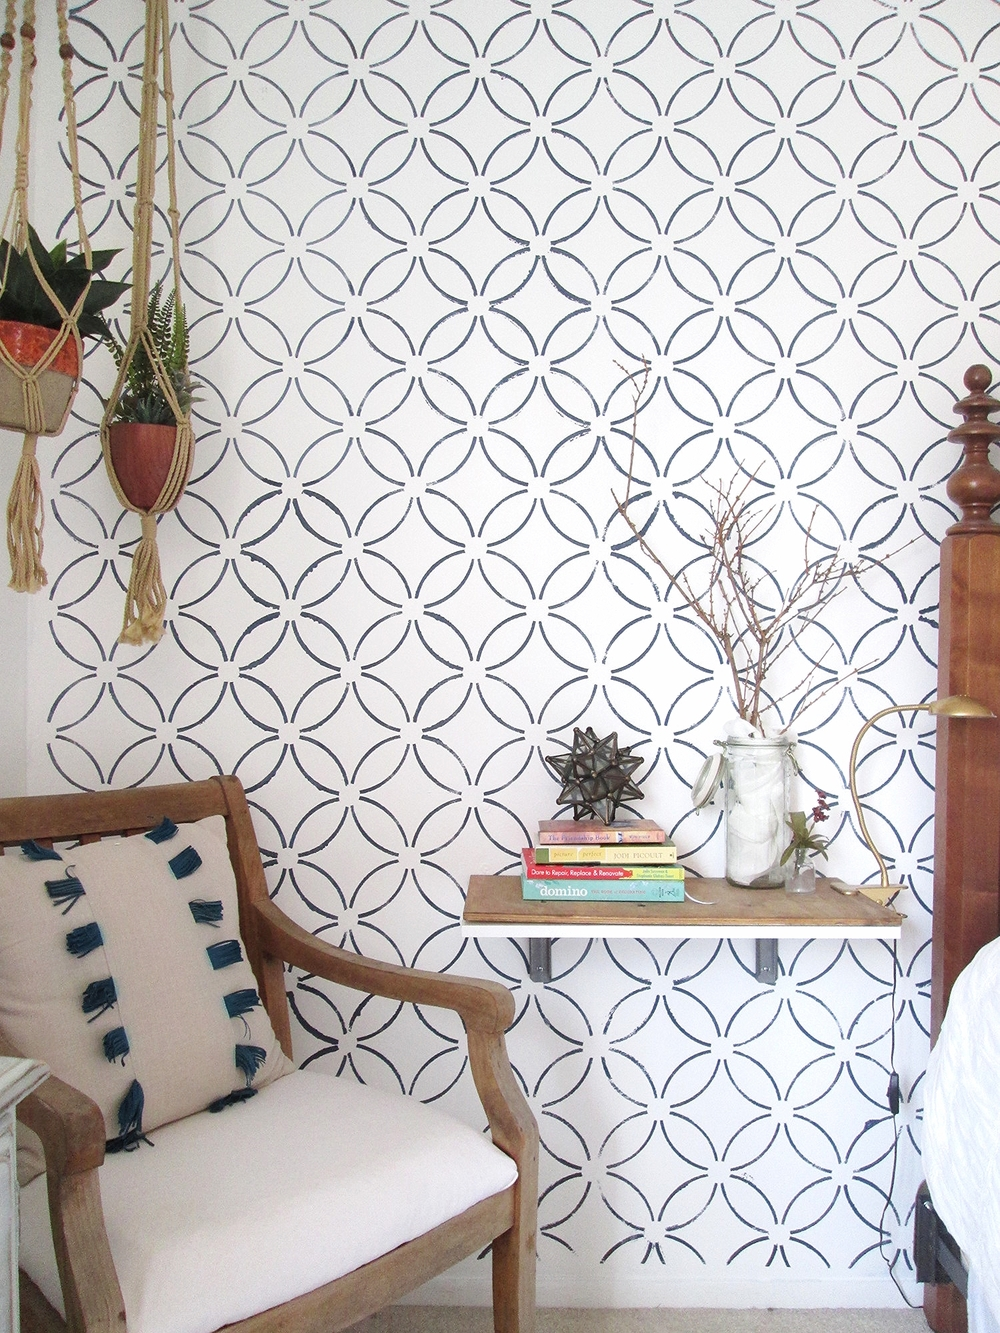 Stencil or wallpaper can you tell the difference stylemutt img2847g amipublicfo Choice Image